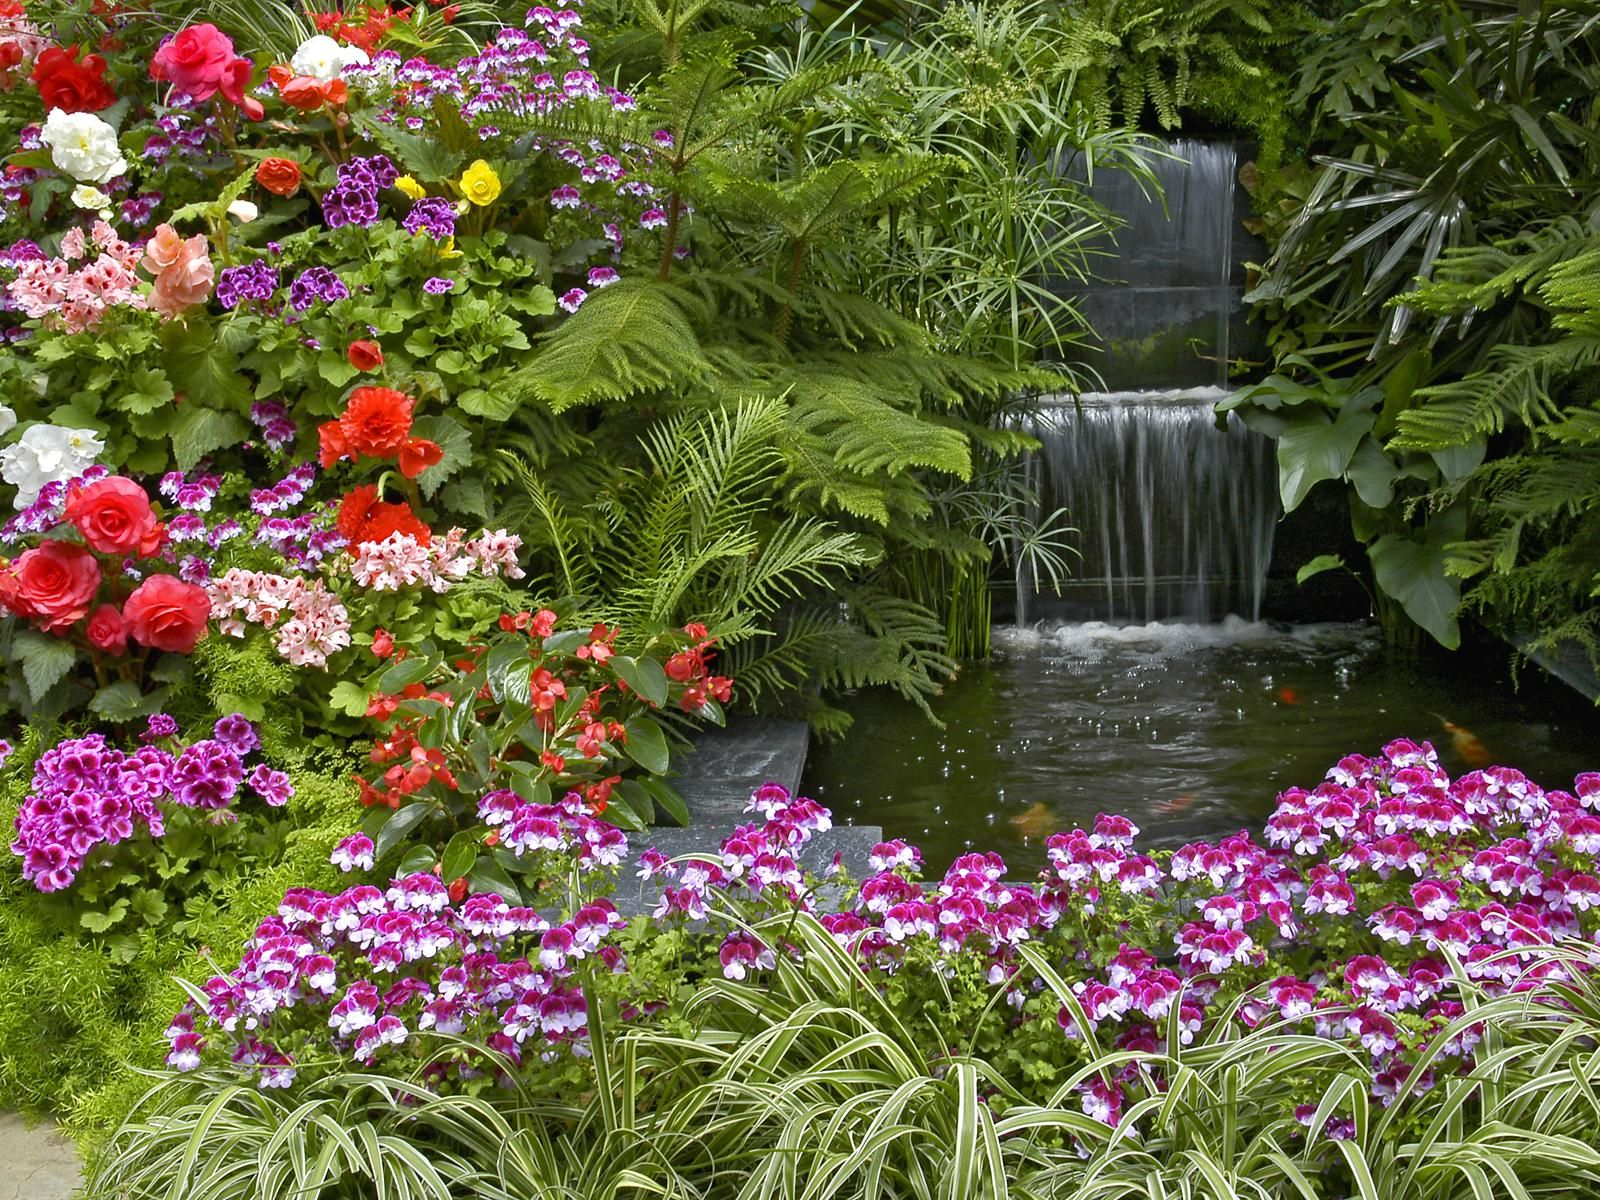 home with garden pictures beautiful garden ideas decoration with varies plants home and garden - Home Garden Decoration